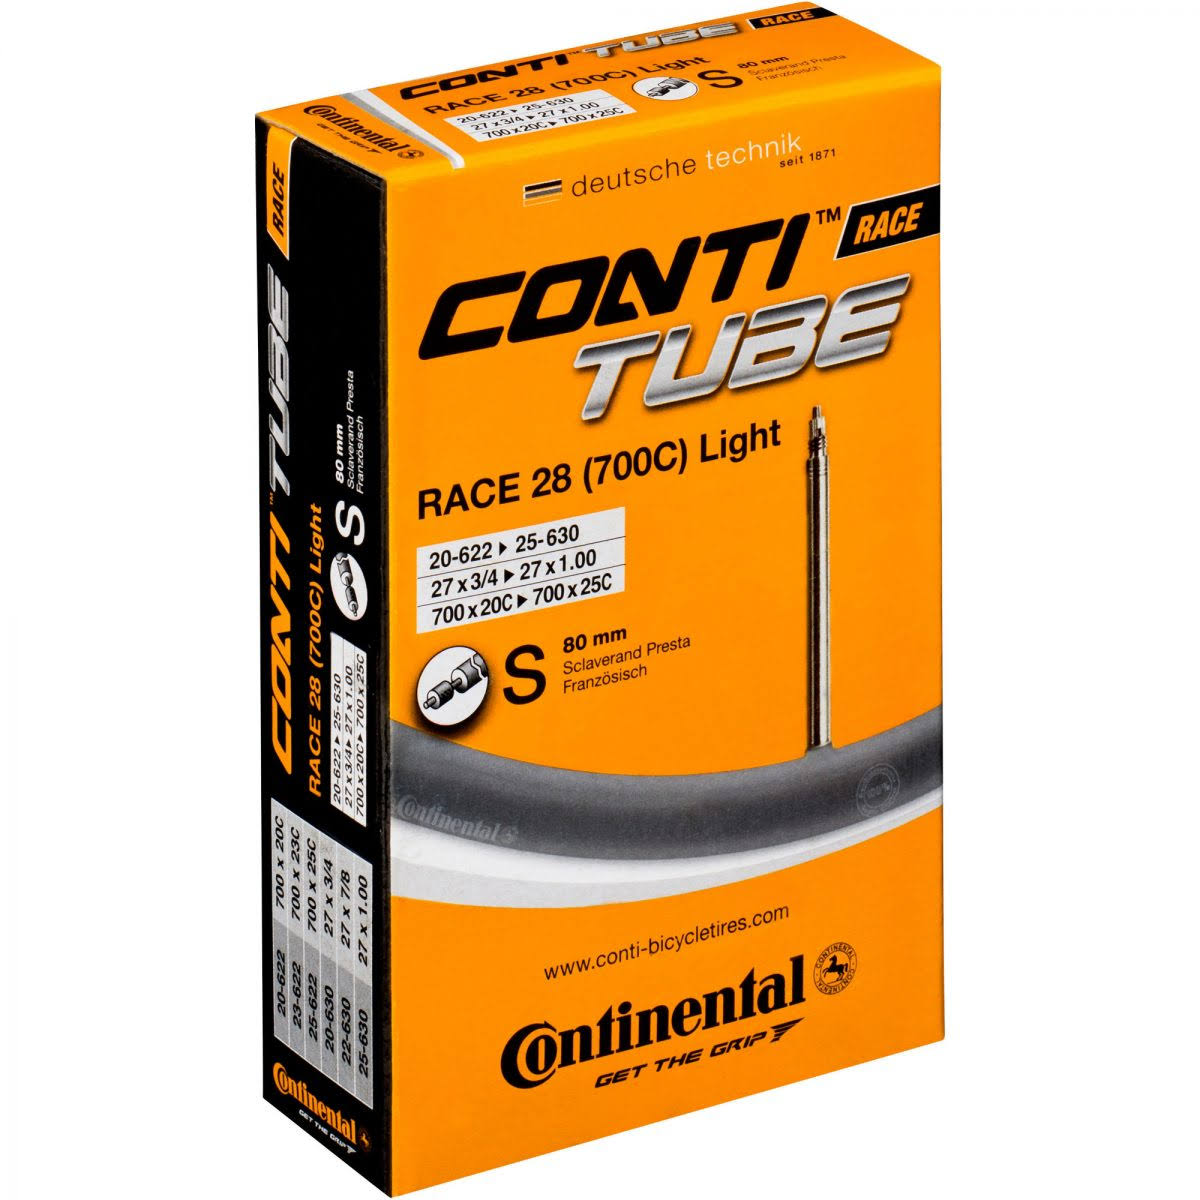 Continental Light Presta Valve Tube - 80mm, Black, 700 x 18-25cc